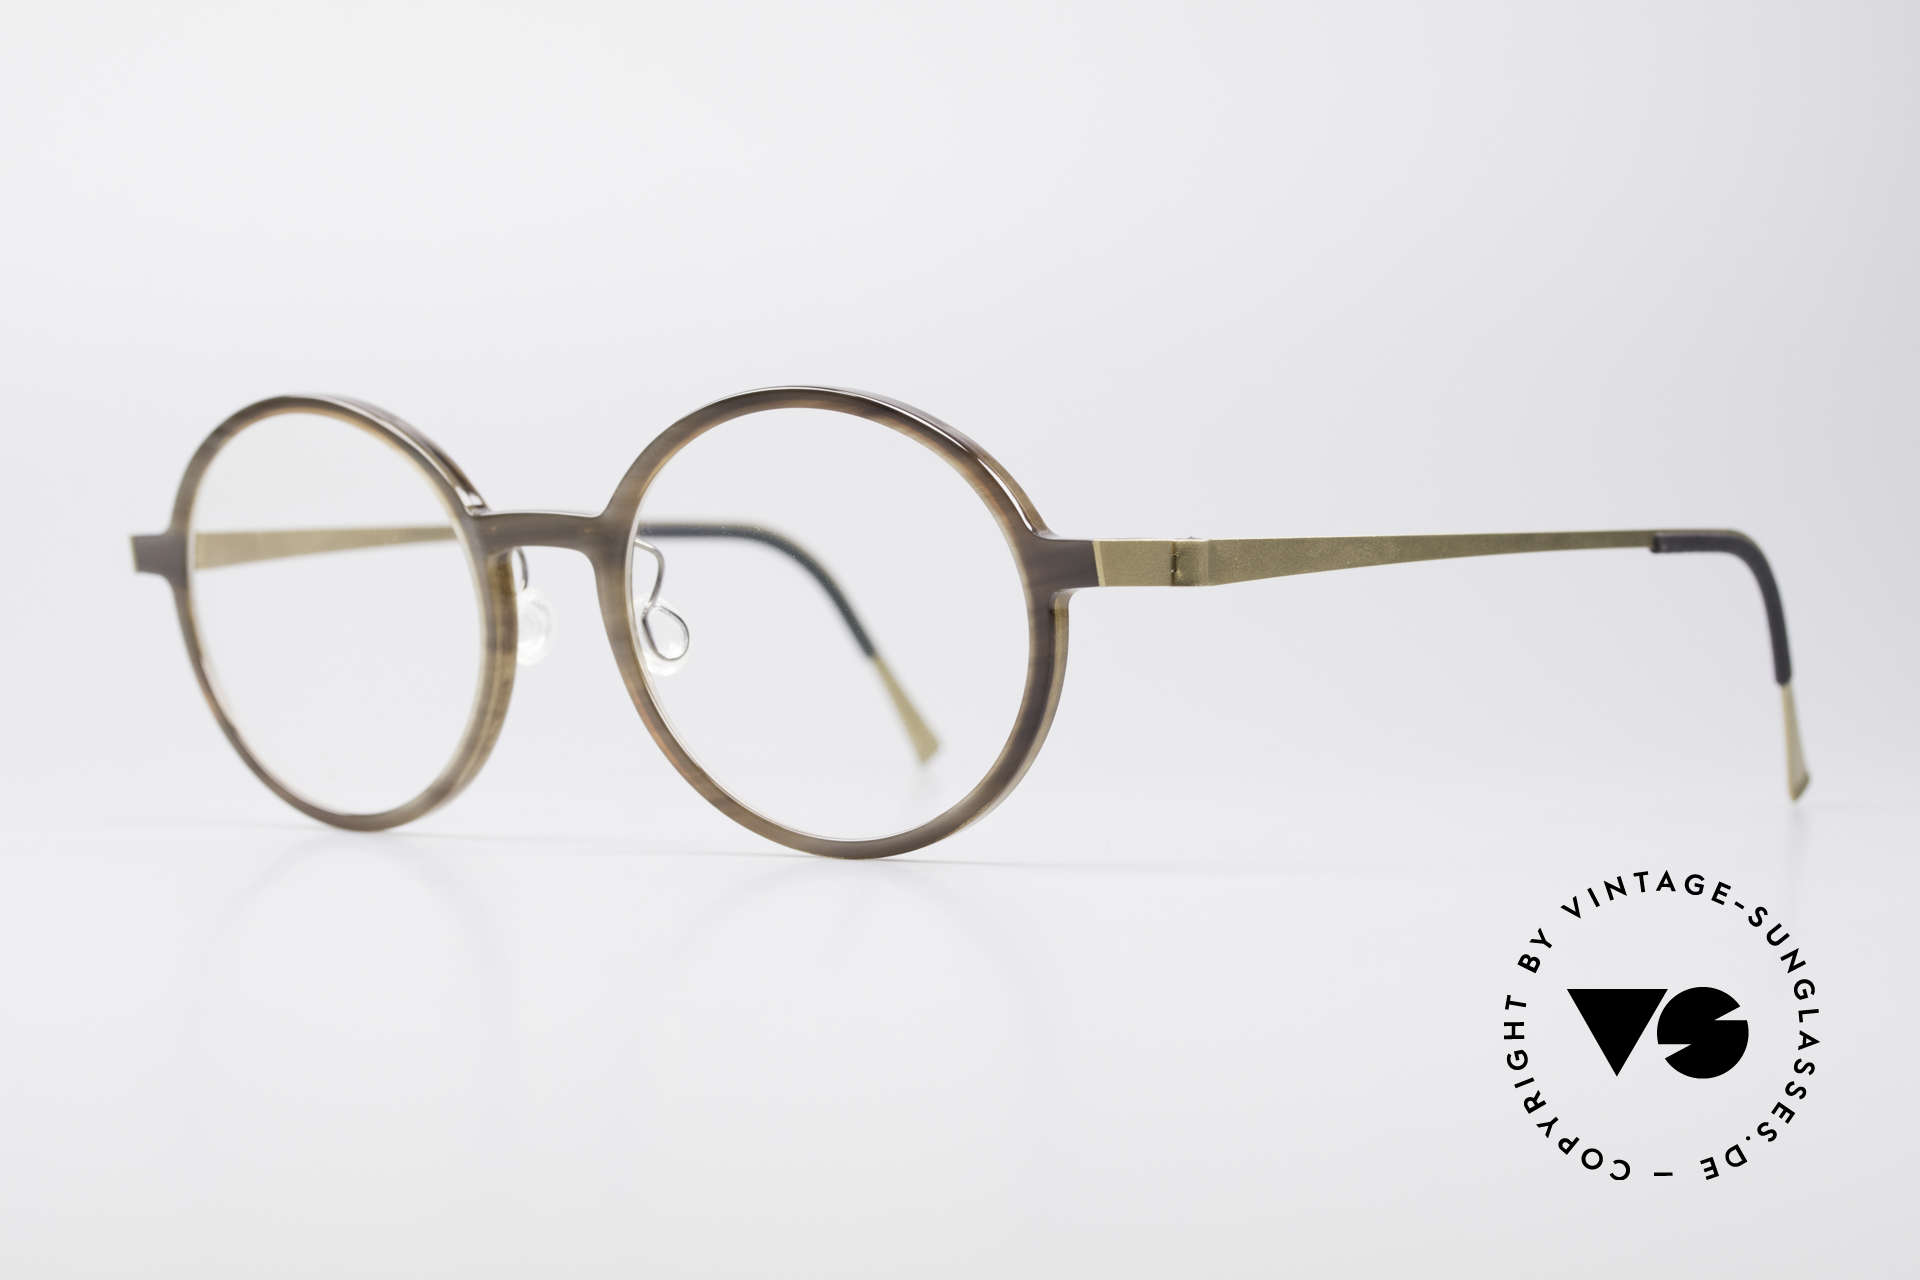 e64eac10a7e Lindberg 1827 Horn Round Horn Eyeglasses. Here you can find the ...